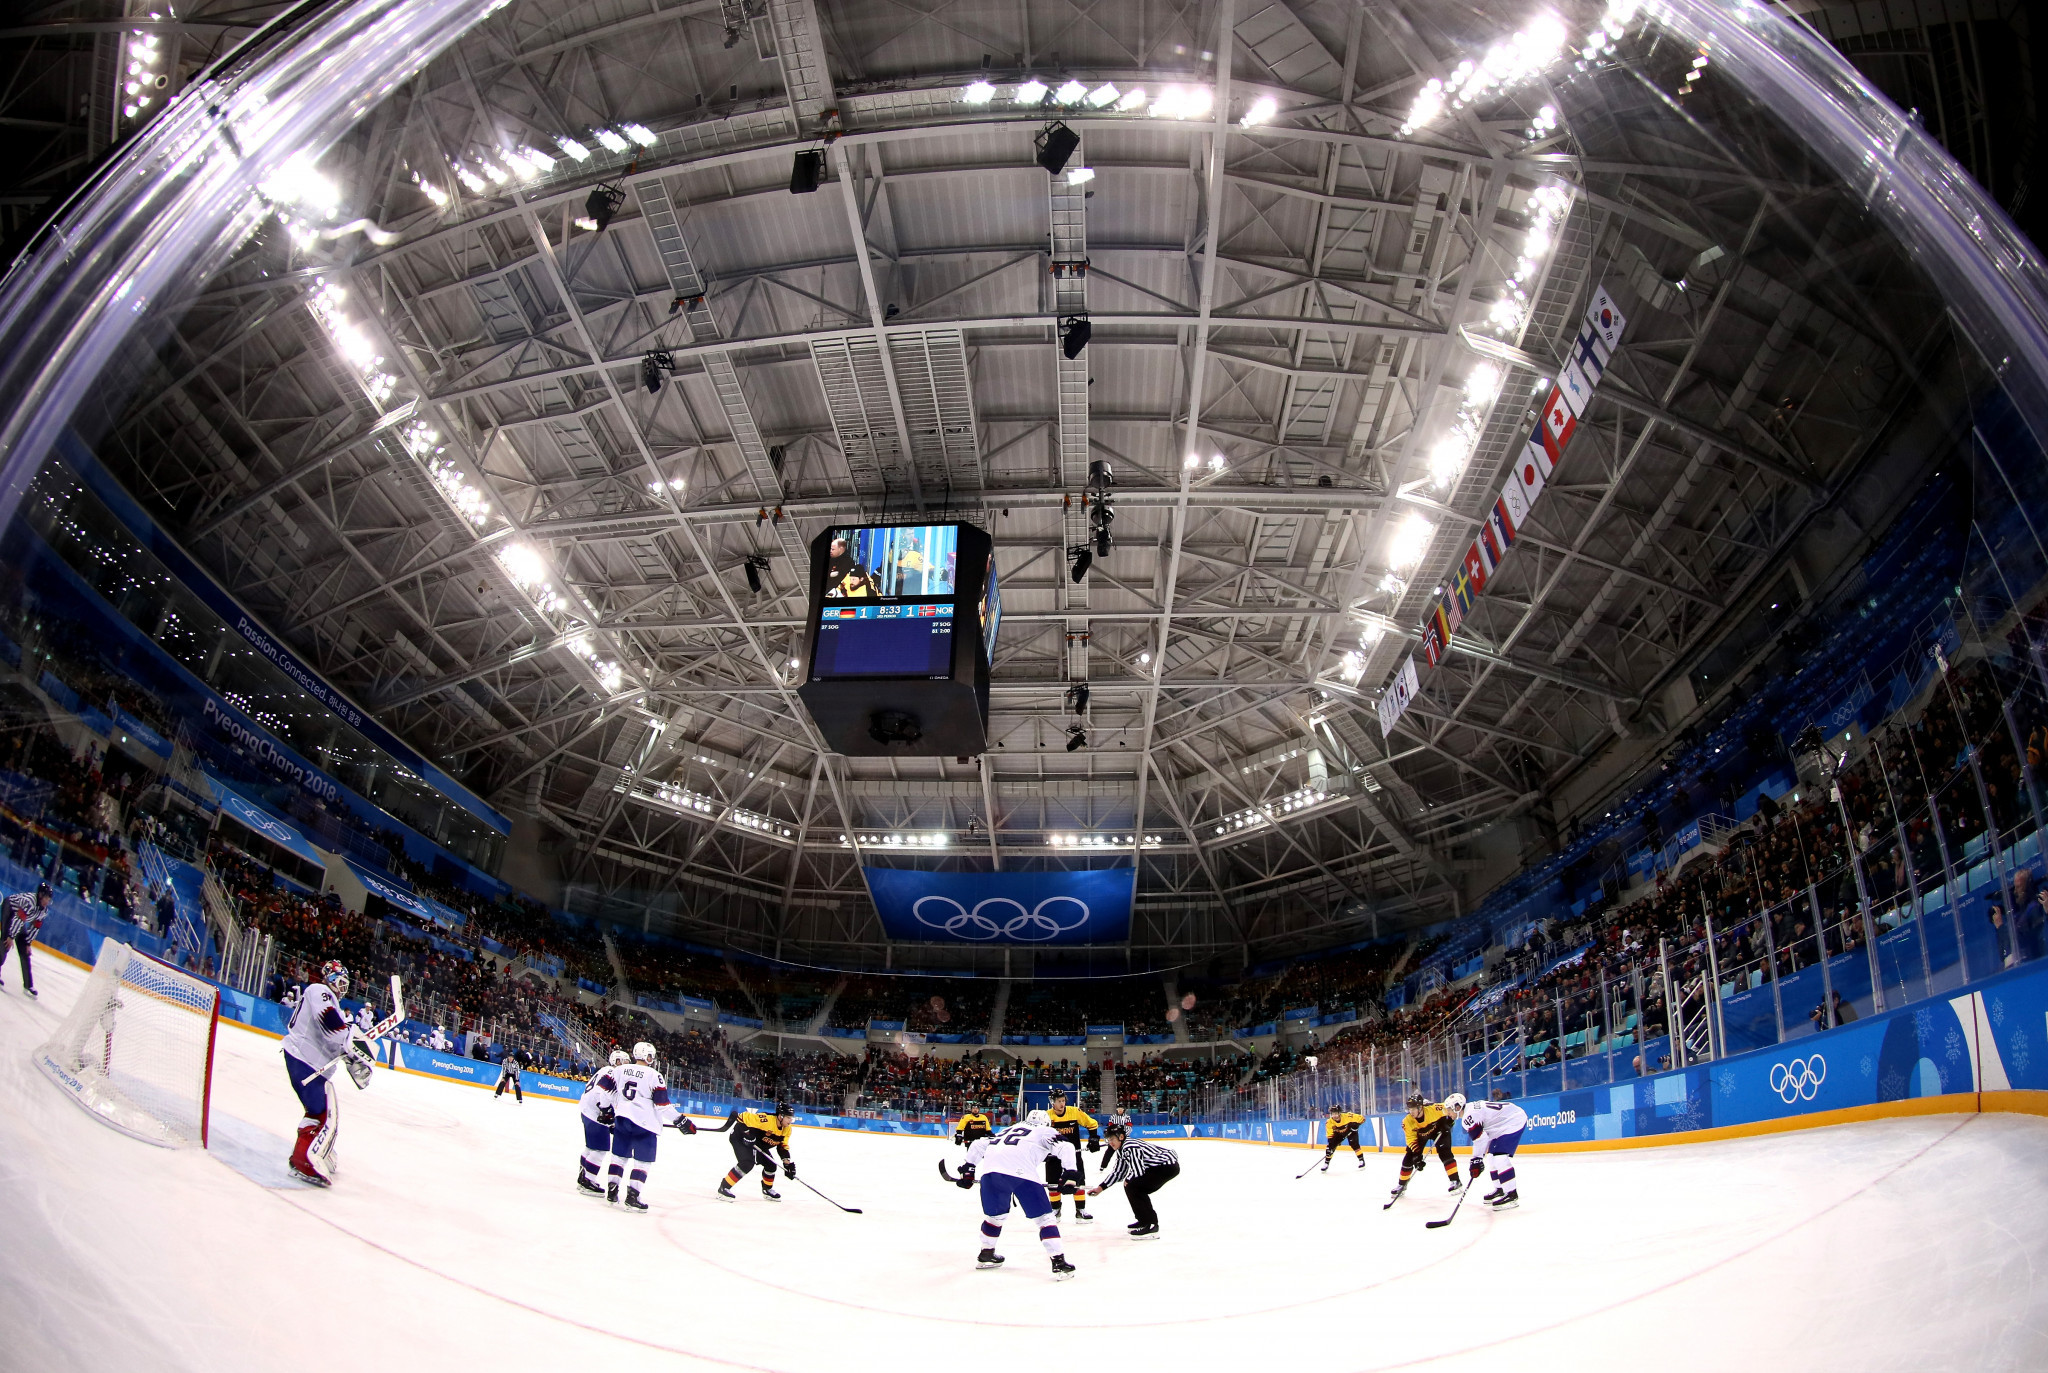 The Gangneung Hockey Centre is one of three Pyeongchang 2018 venues where legacy plans have not been confirmed ©Getty Images